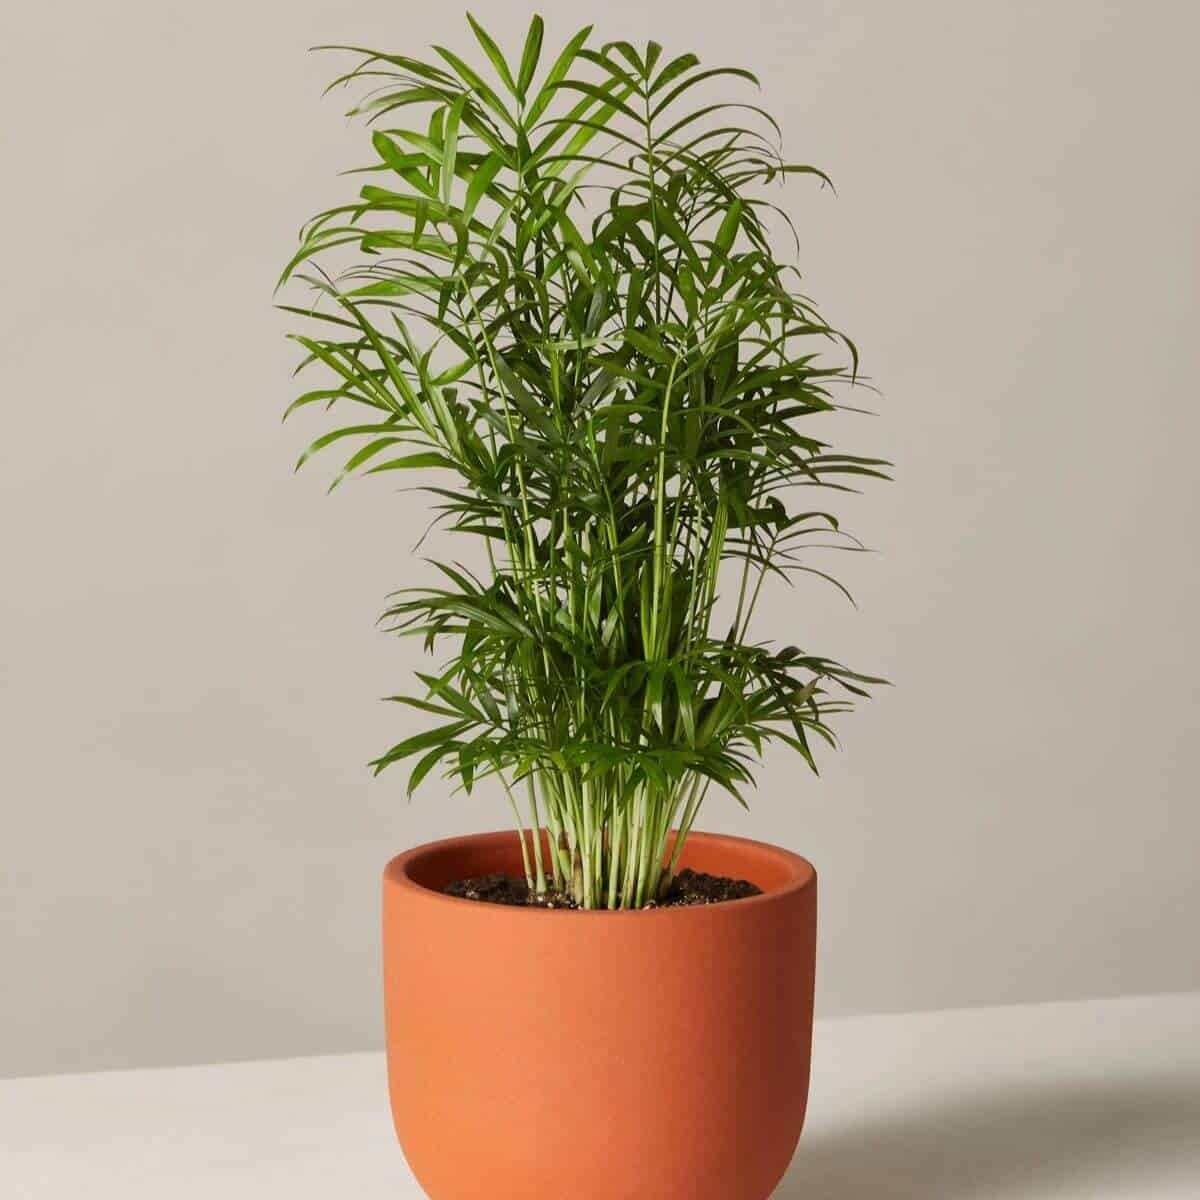 Parlor palm in a terracotta pot.